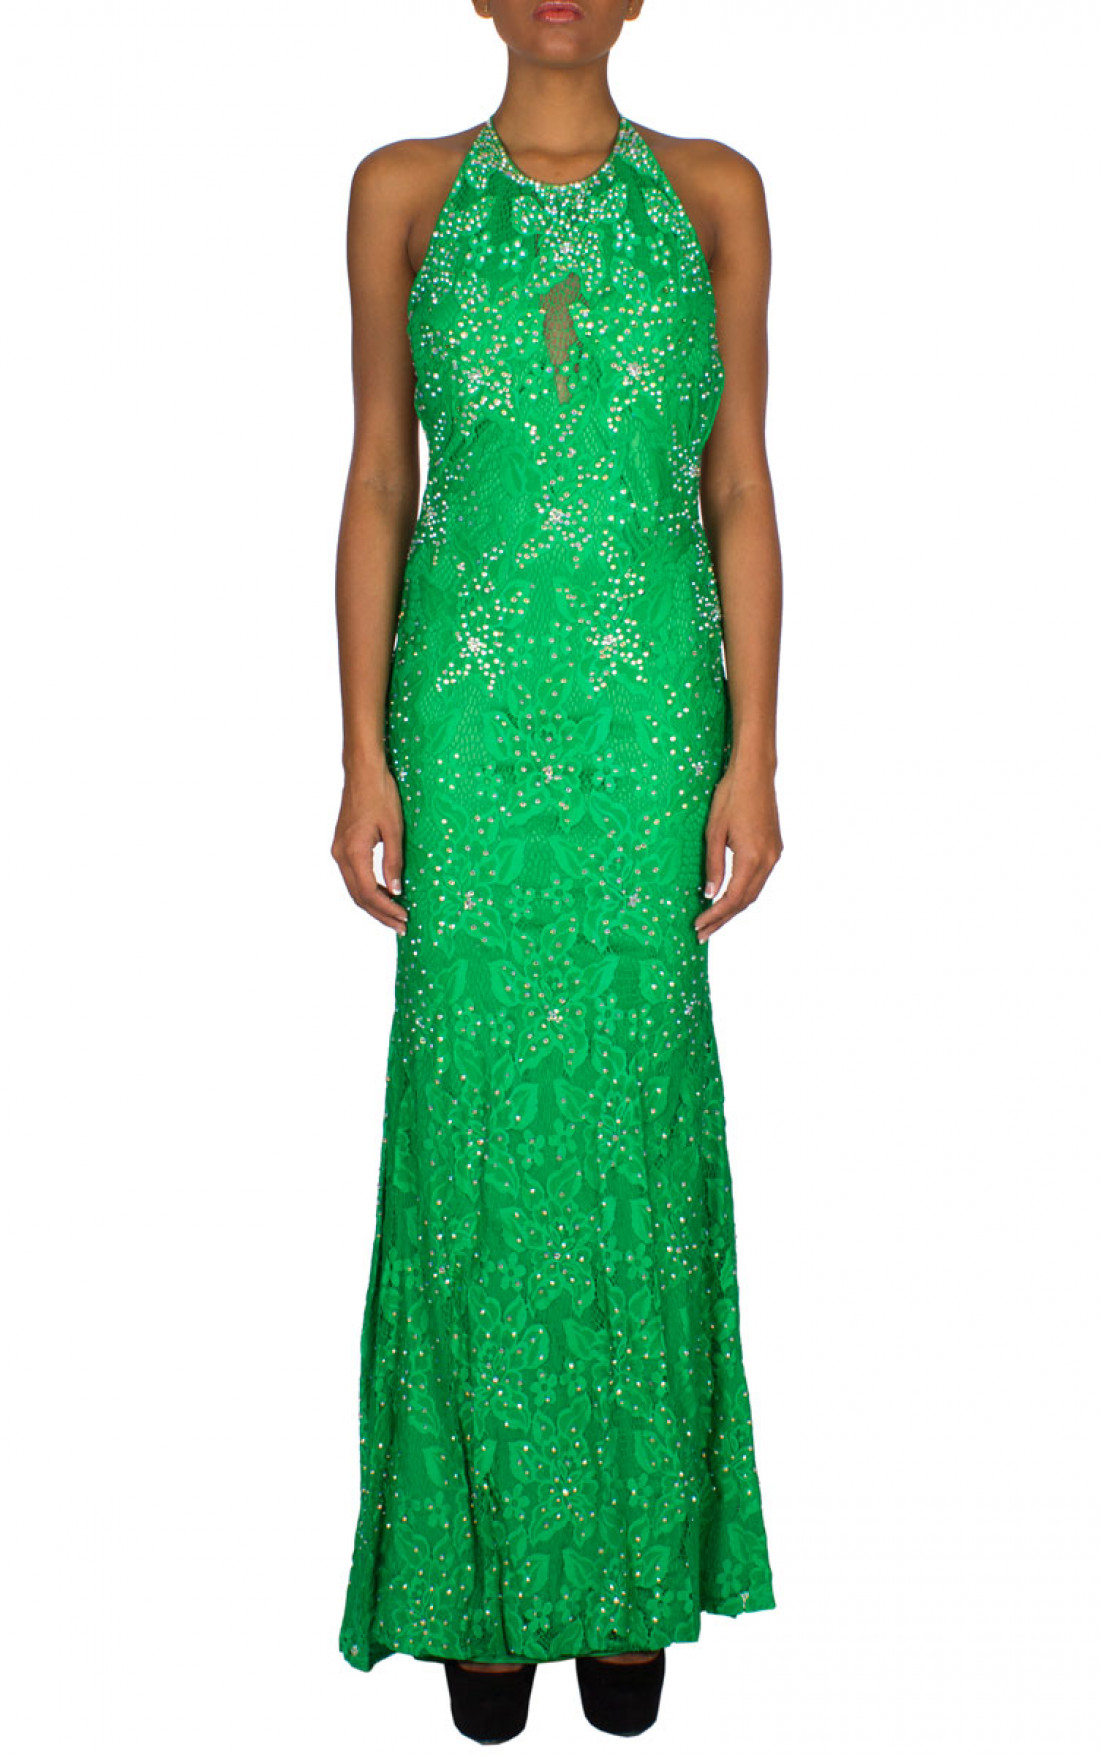 Jovani - 'Crystal Flower' Gown Emerald Front (93140A)